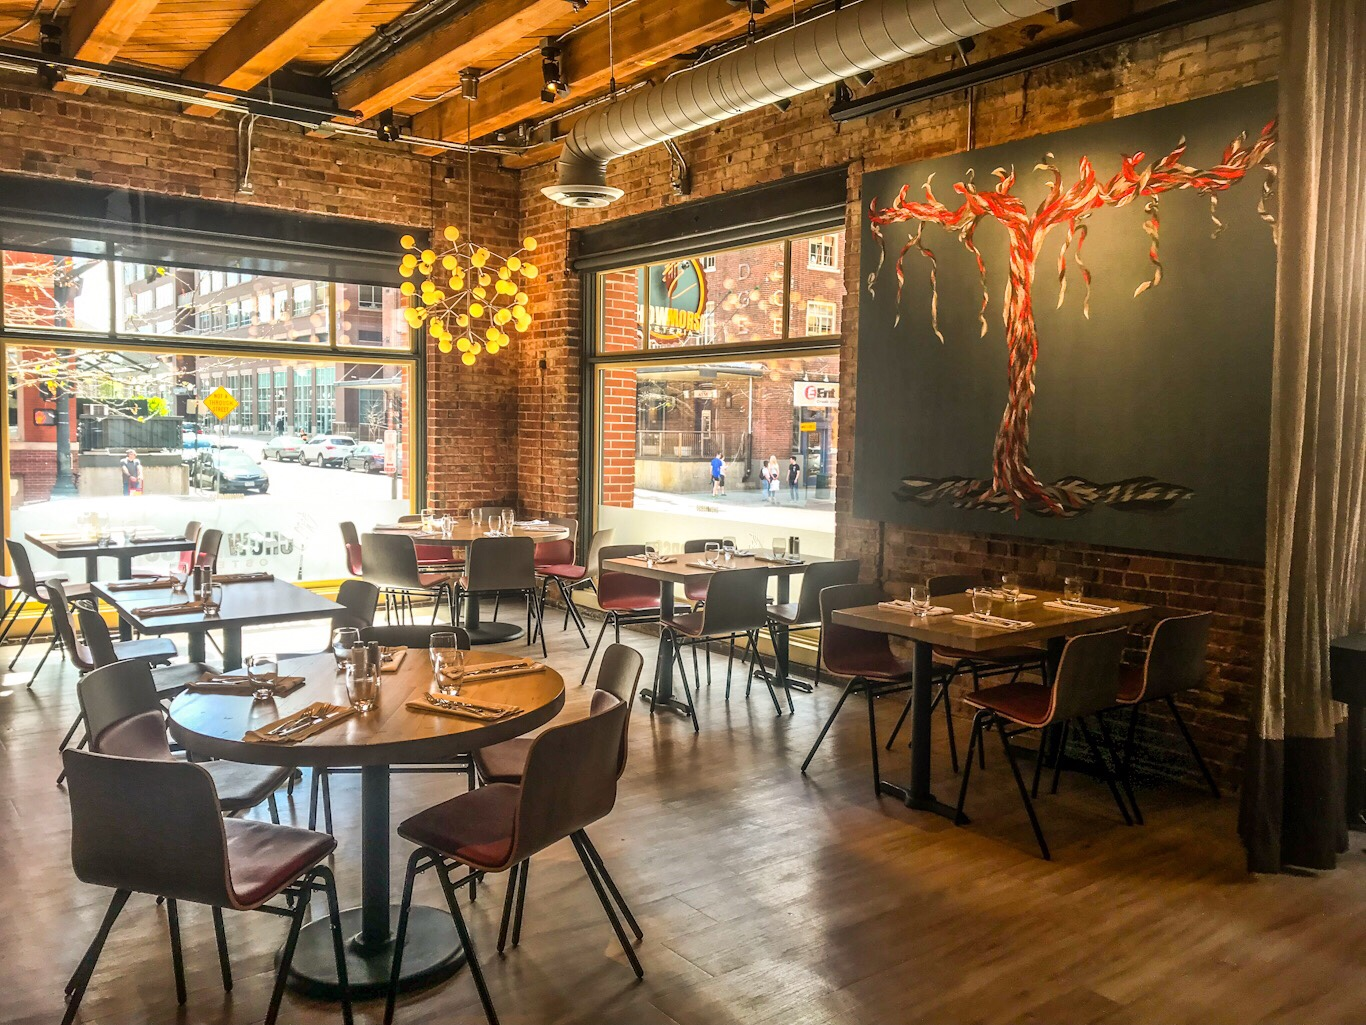 Chow Morso Osteria dining room in lower downtown Denver, CO